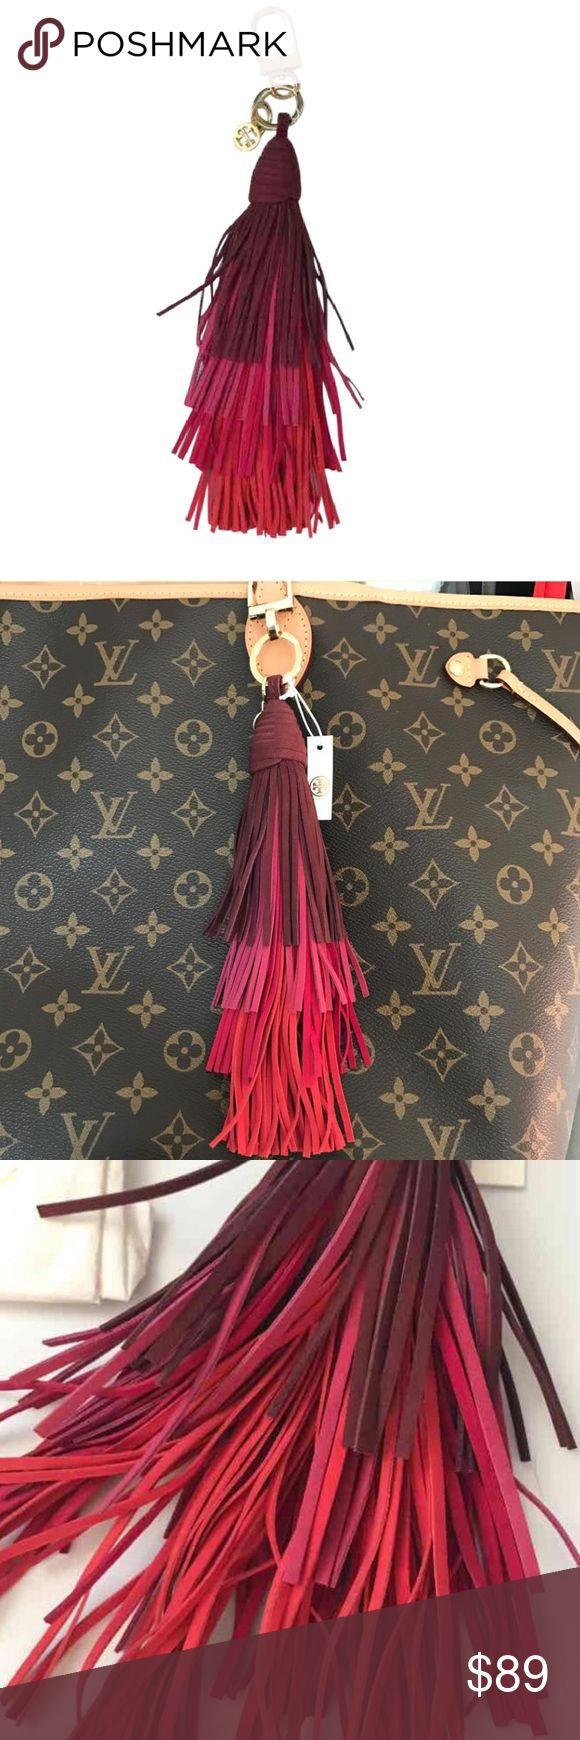 TORY BURCH Ombre Multi Layer Tassel Bag Charm Brand new with tags. Bag charm. Key holder. Unique multi-color long Tassel. Retail $115. Authentic. Purchased at Nordstrom. Tory Burch Accessories Key & Card Holders